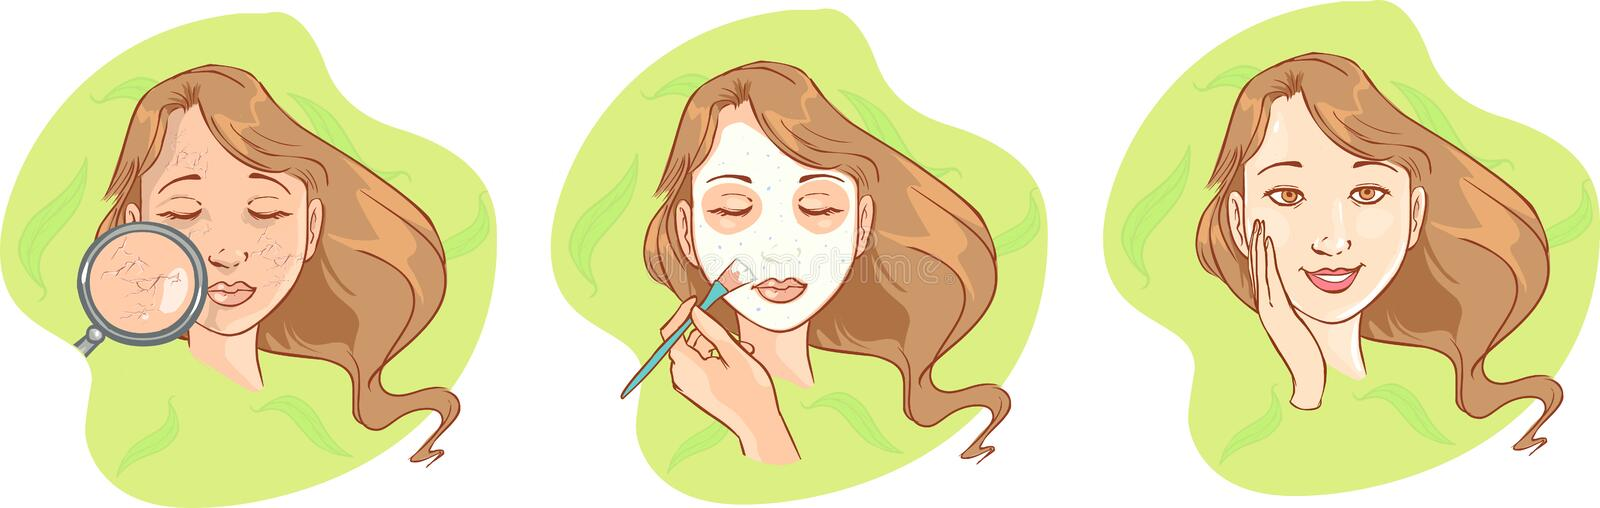 Spa girl with regeneration facial mask. Young girl with facial mask stock illustration